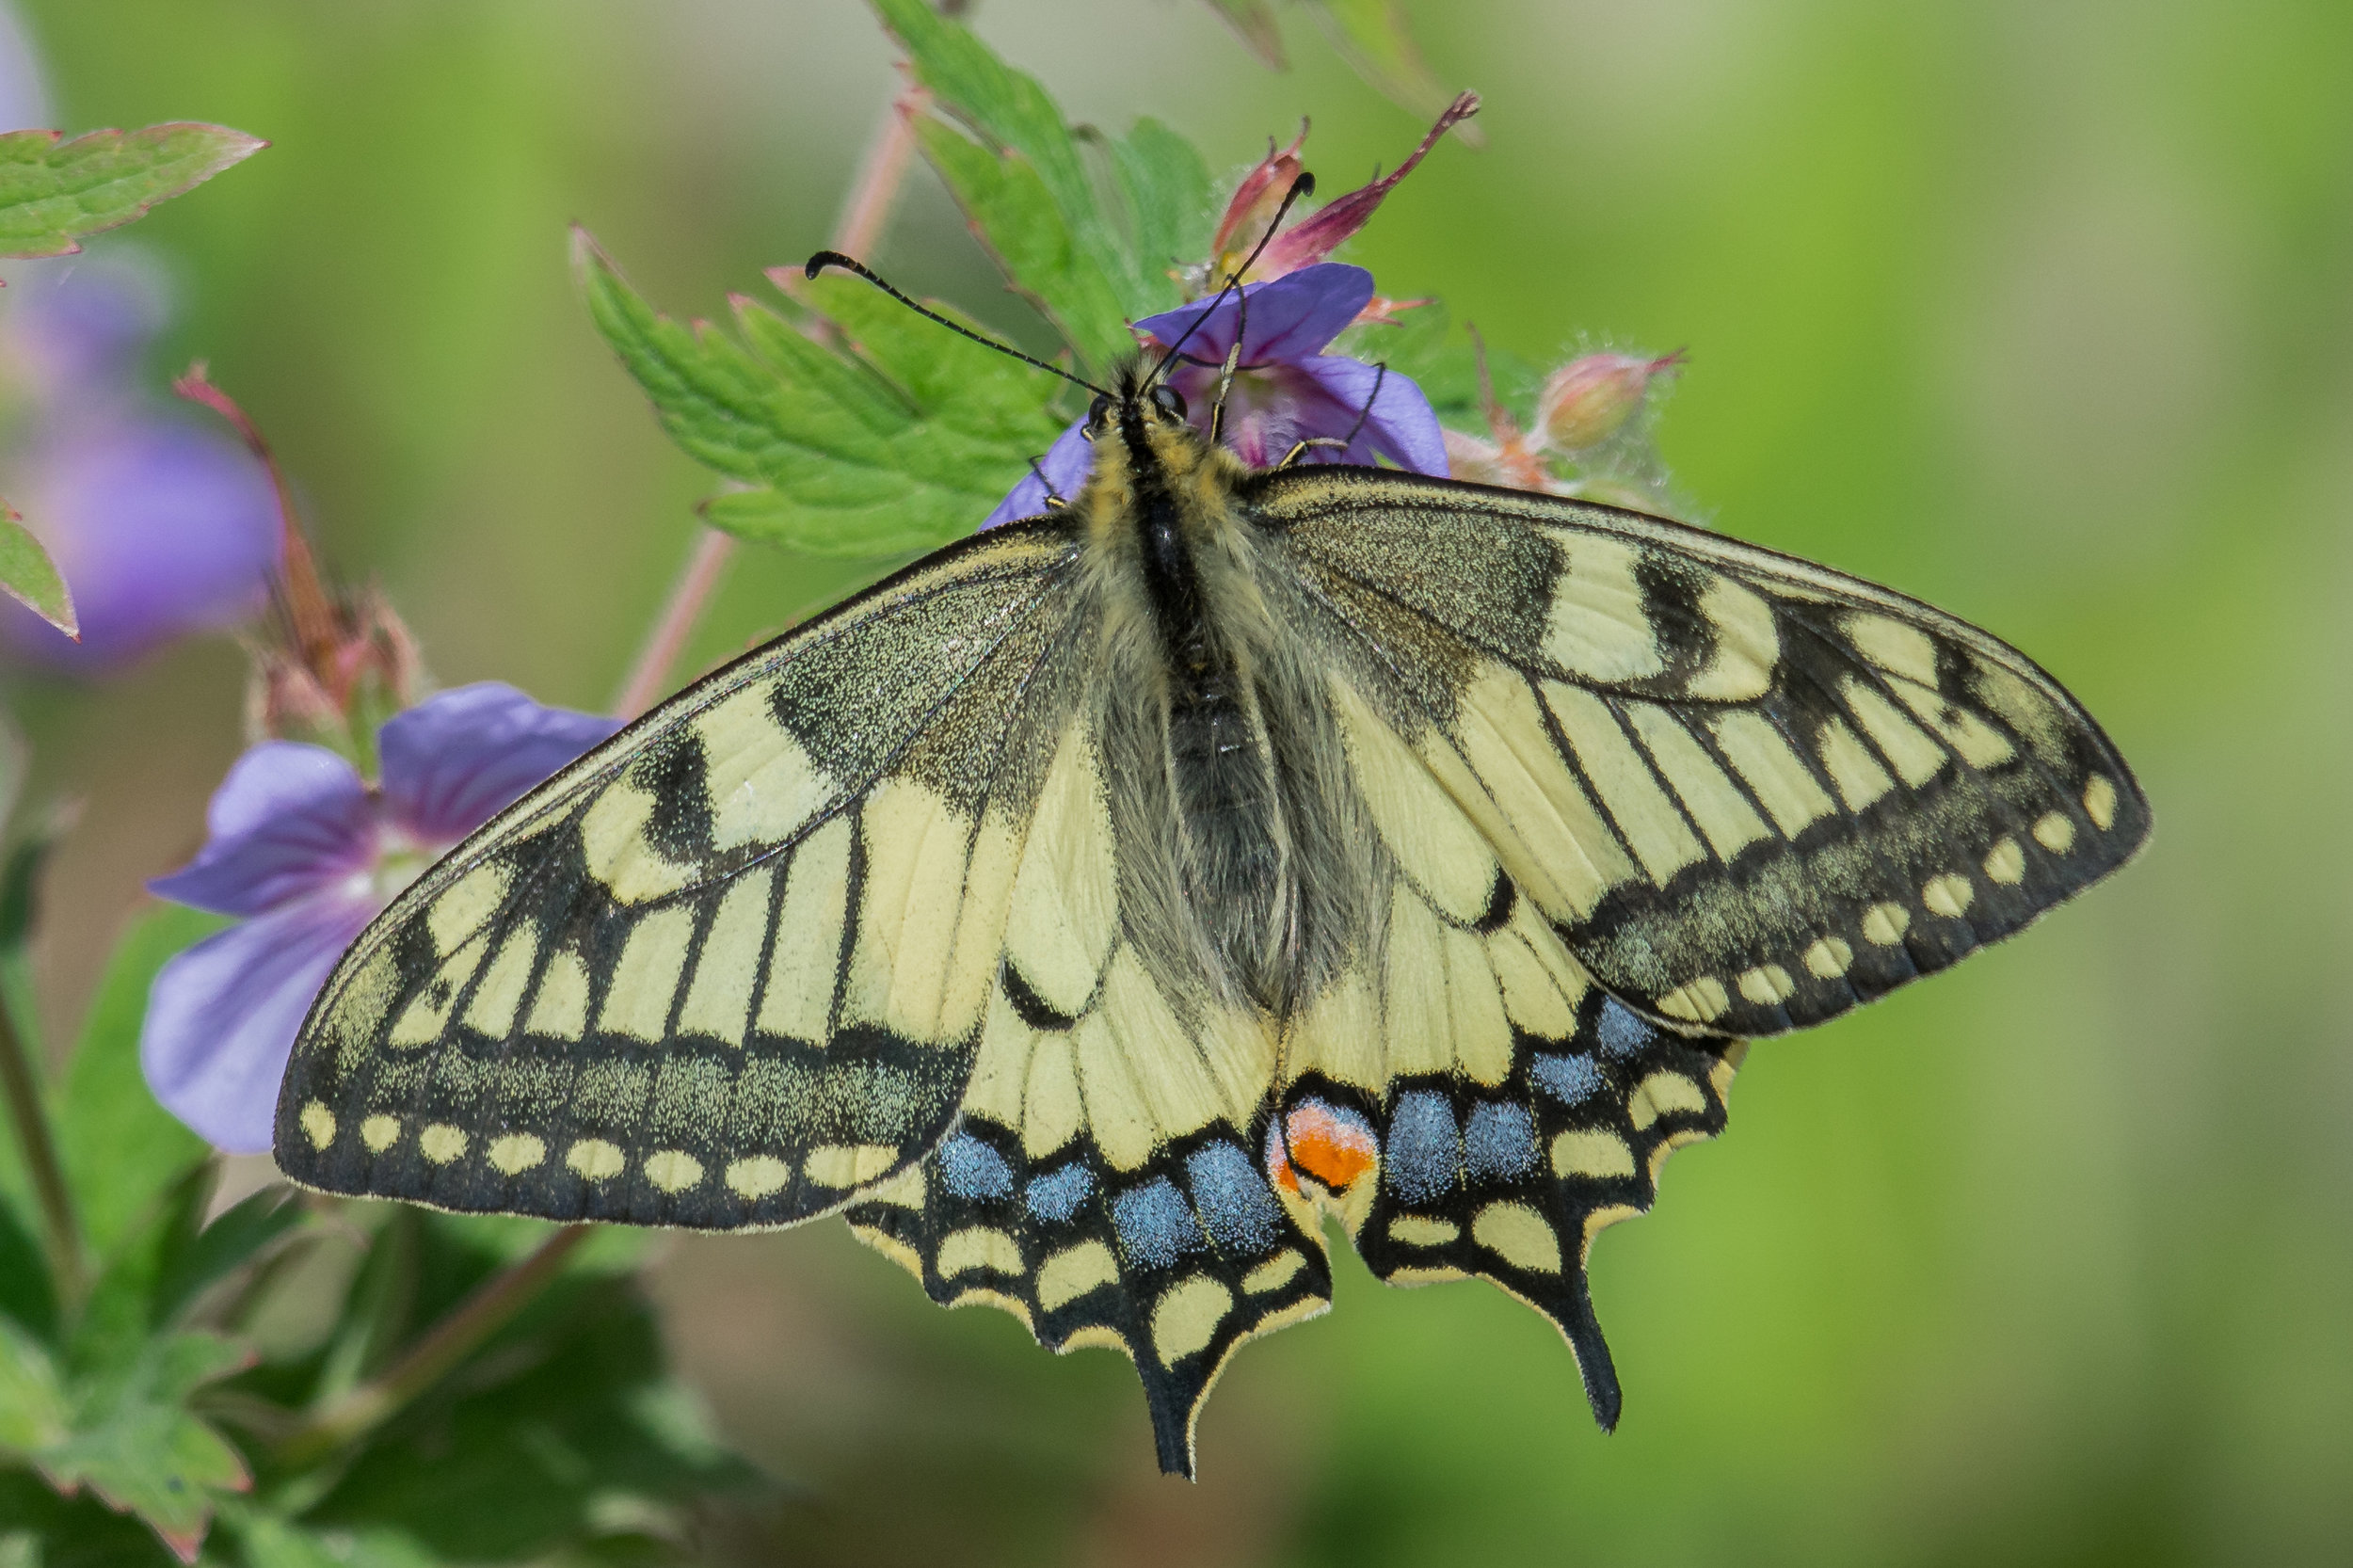 Swallowtail Butterfly (Papilio machaon gorganus), KAM (RU)